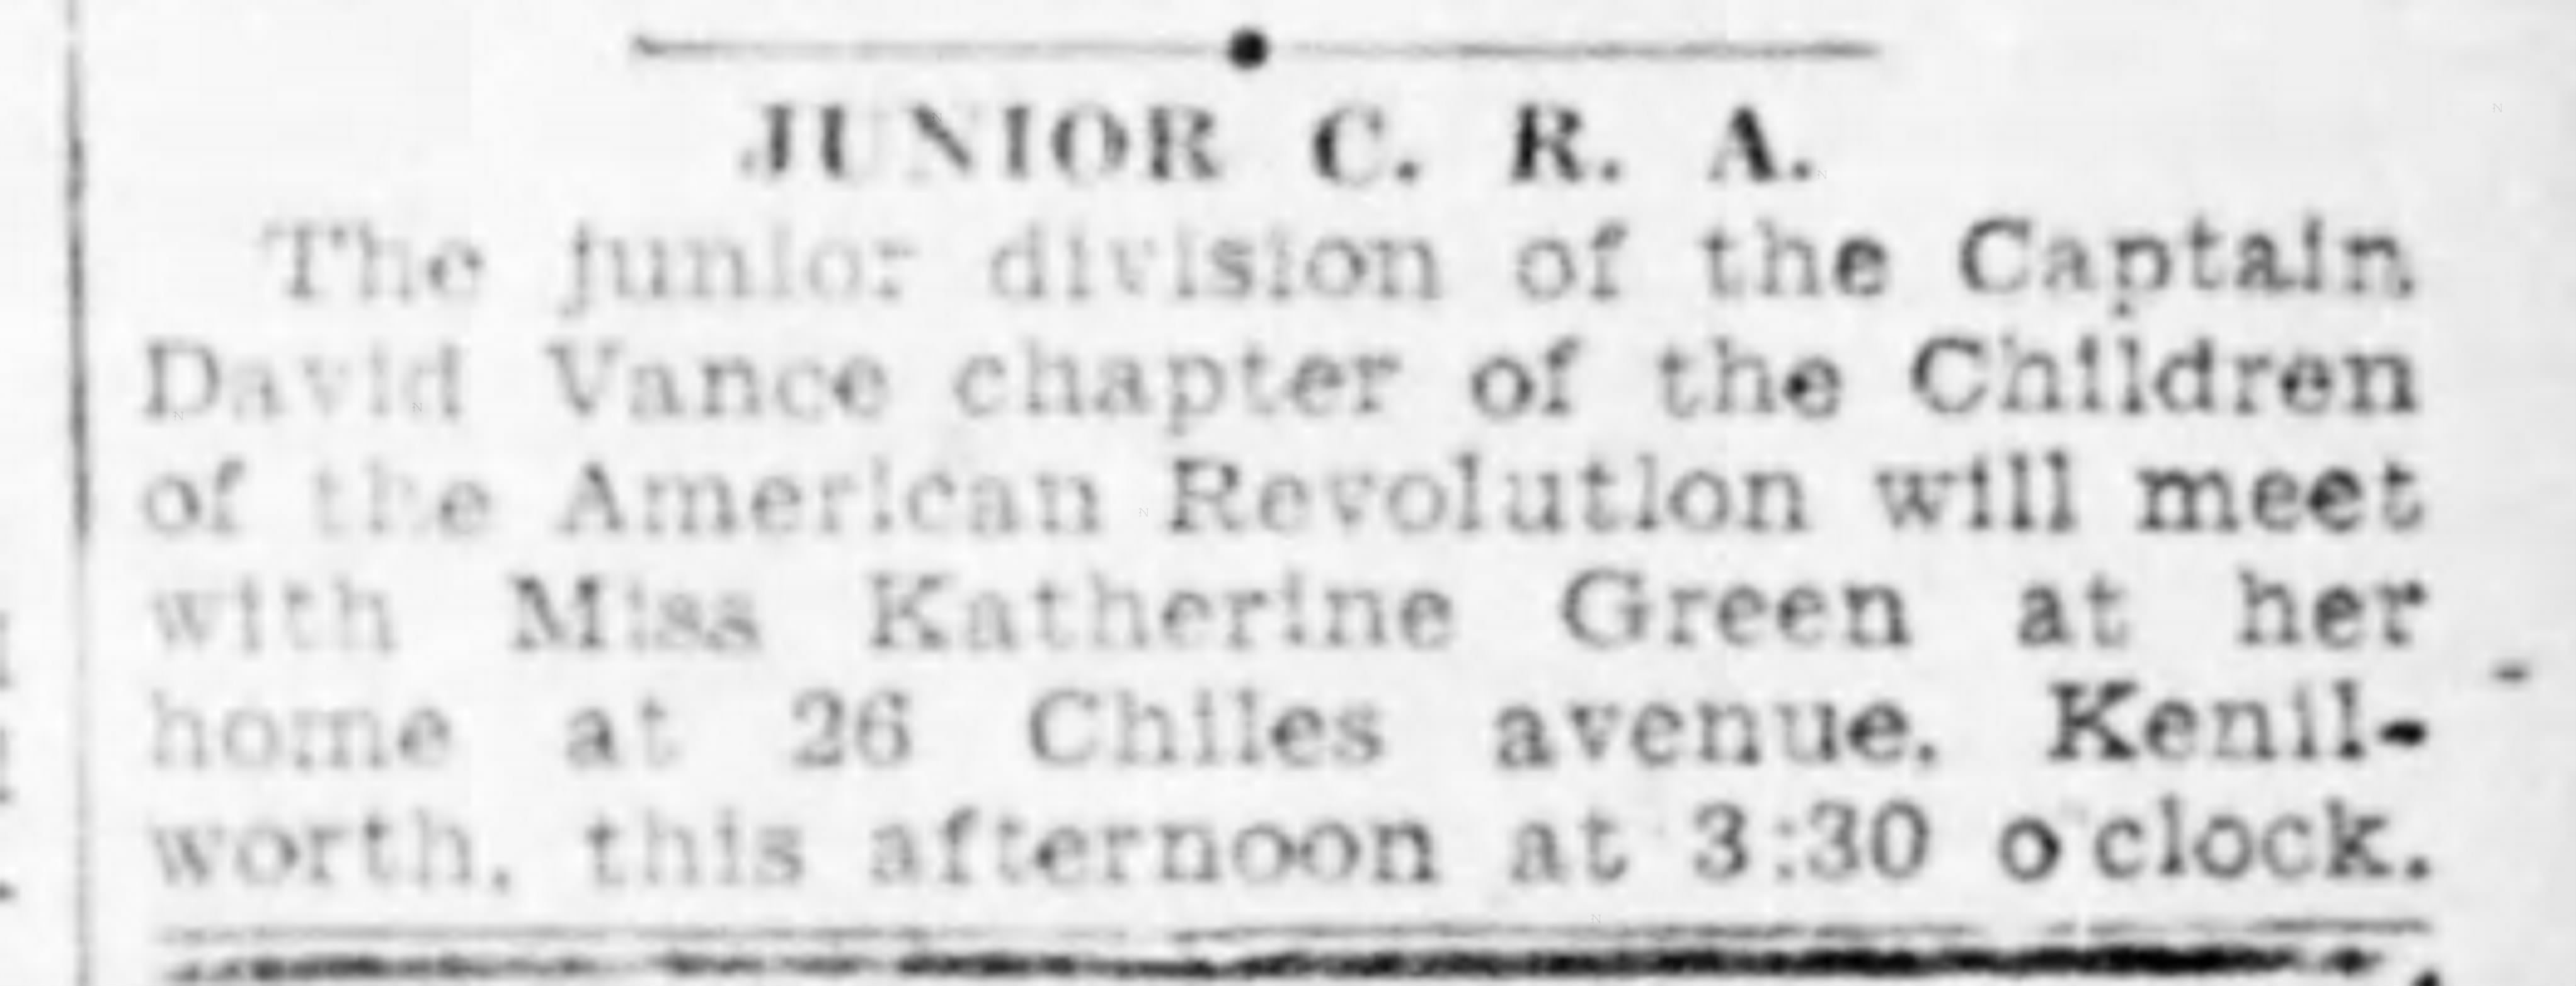 26-chiles-children-of-the-american-revolution-asheville_citizen_times_sat__mar_22__1930_